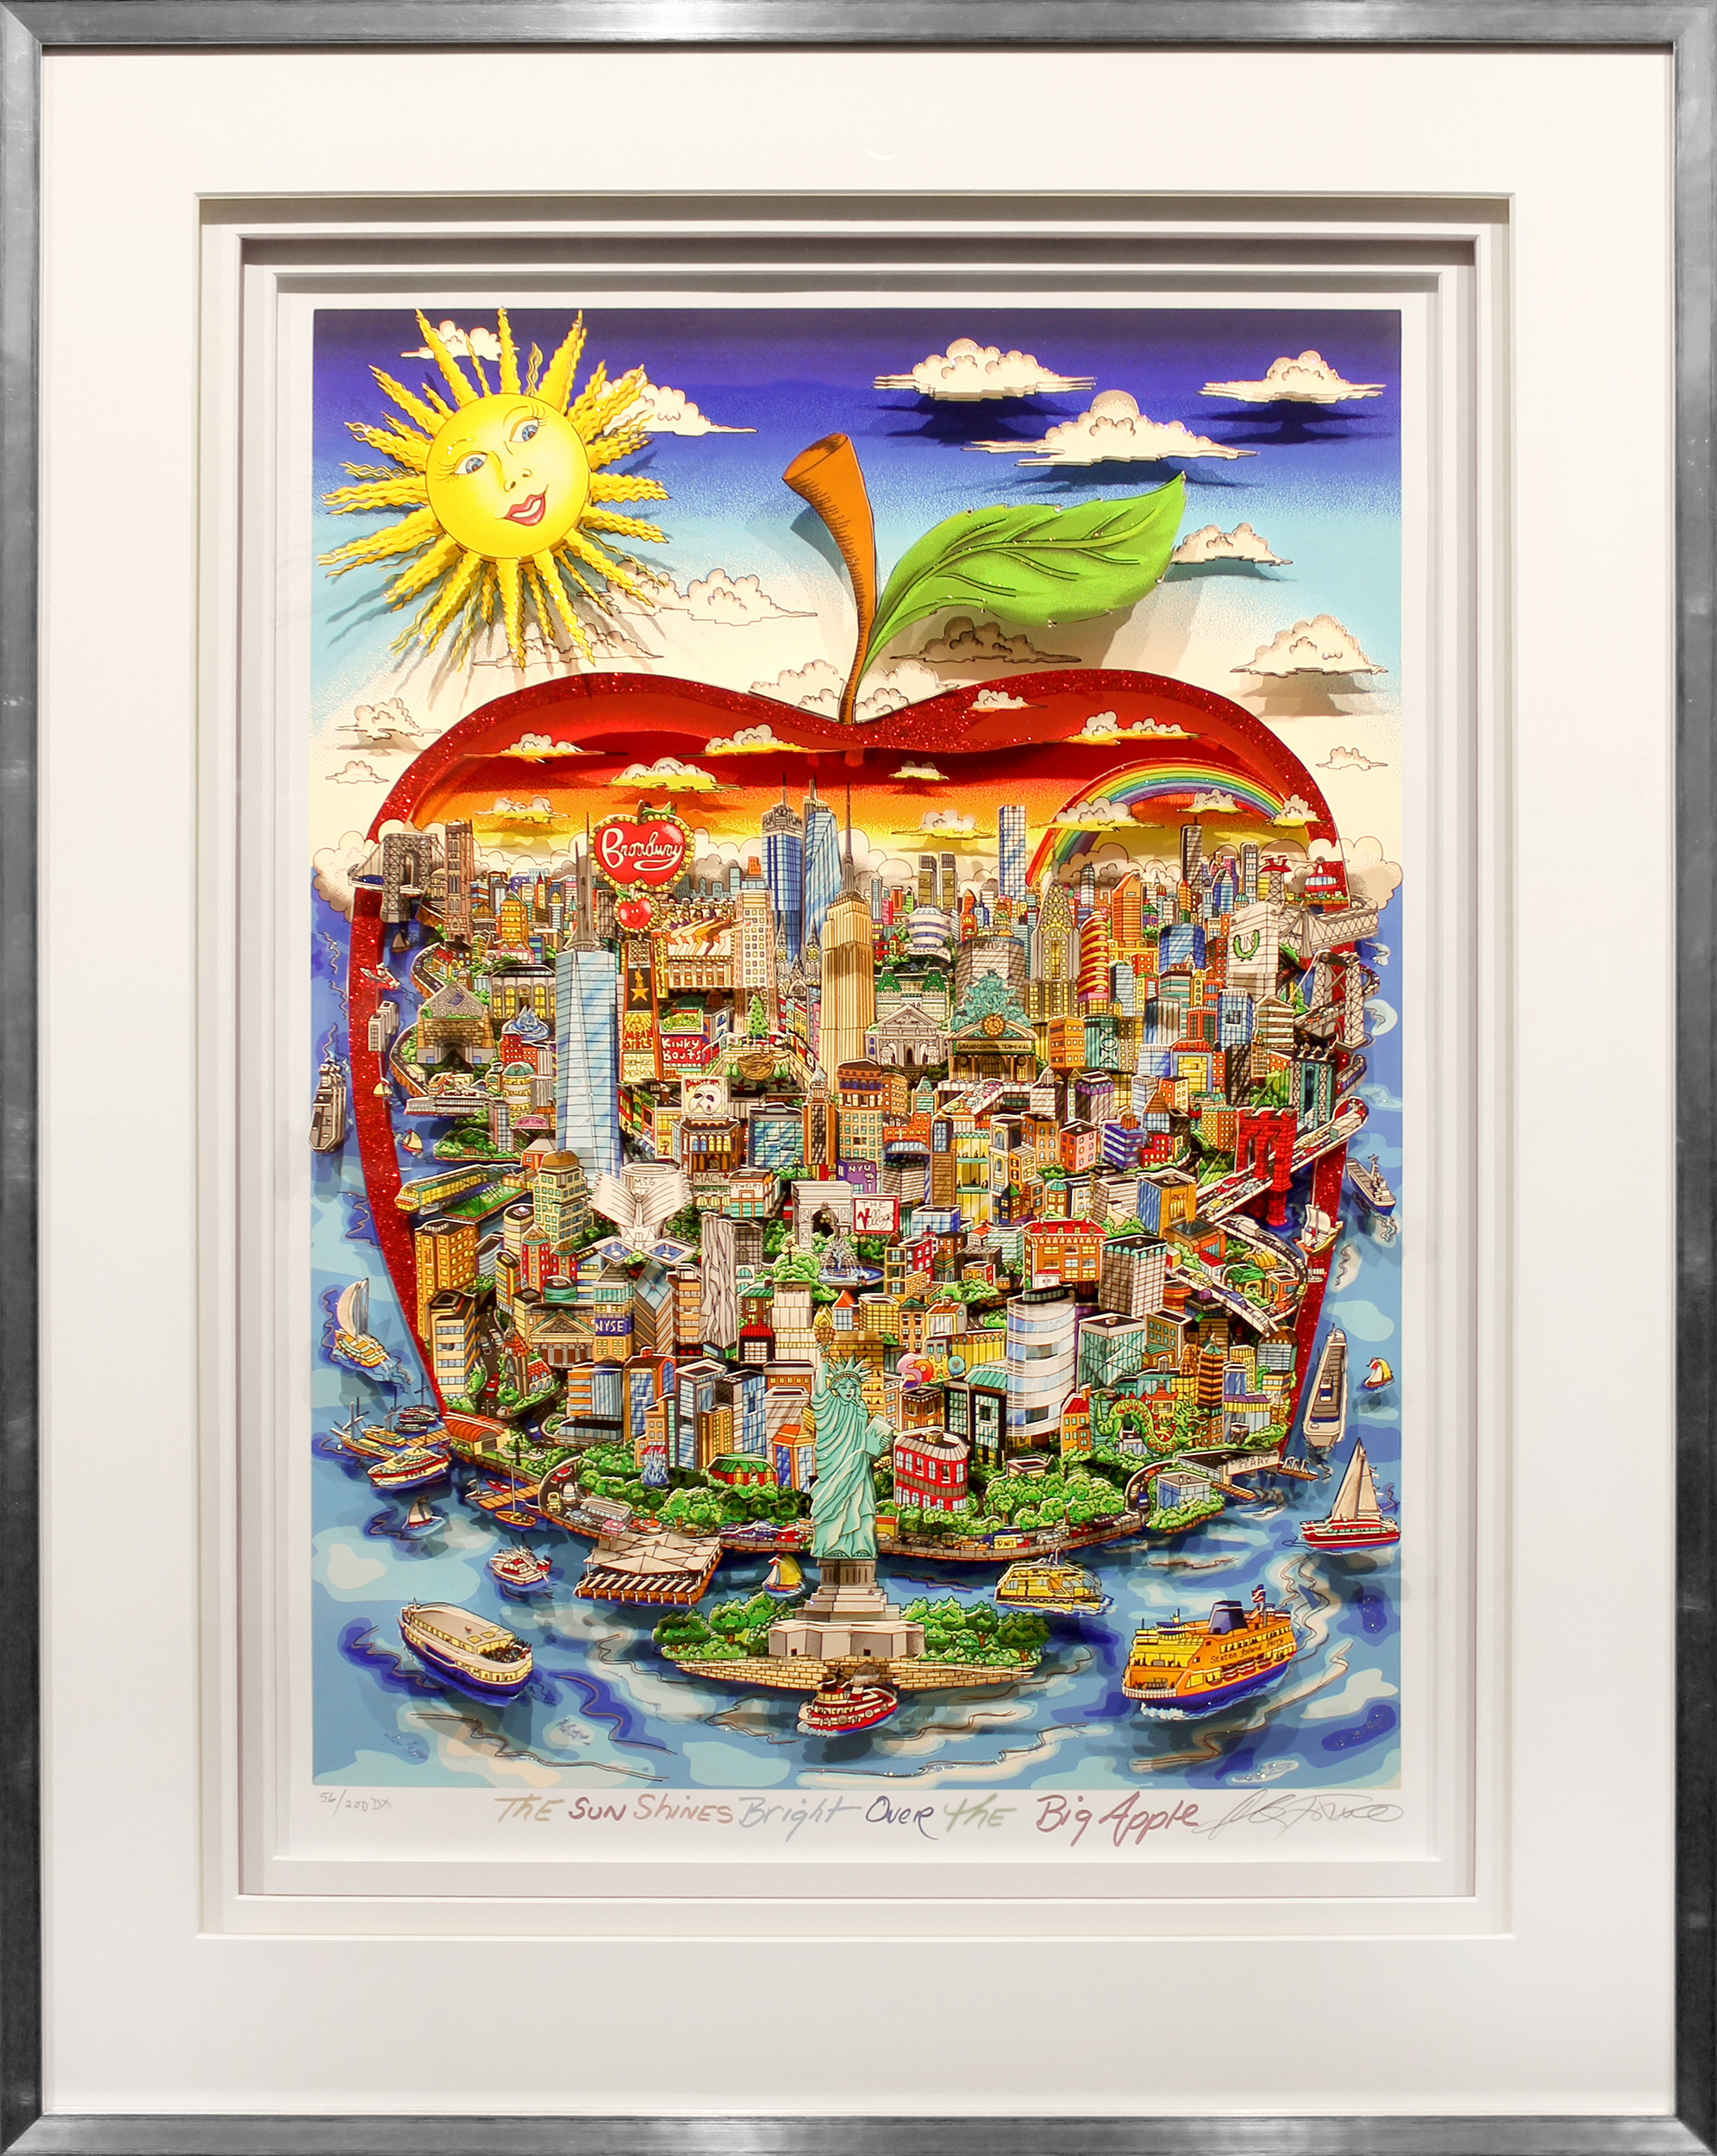 Charles Fazzino - The Sun shines bright over the Big Apple , 5553-008-963-972